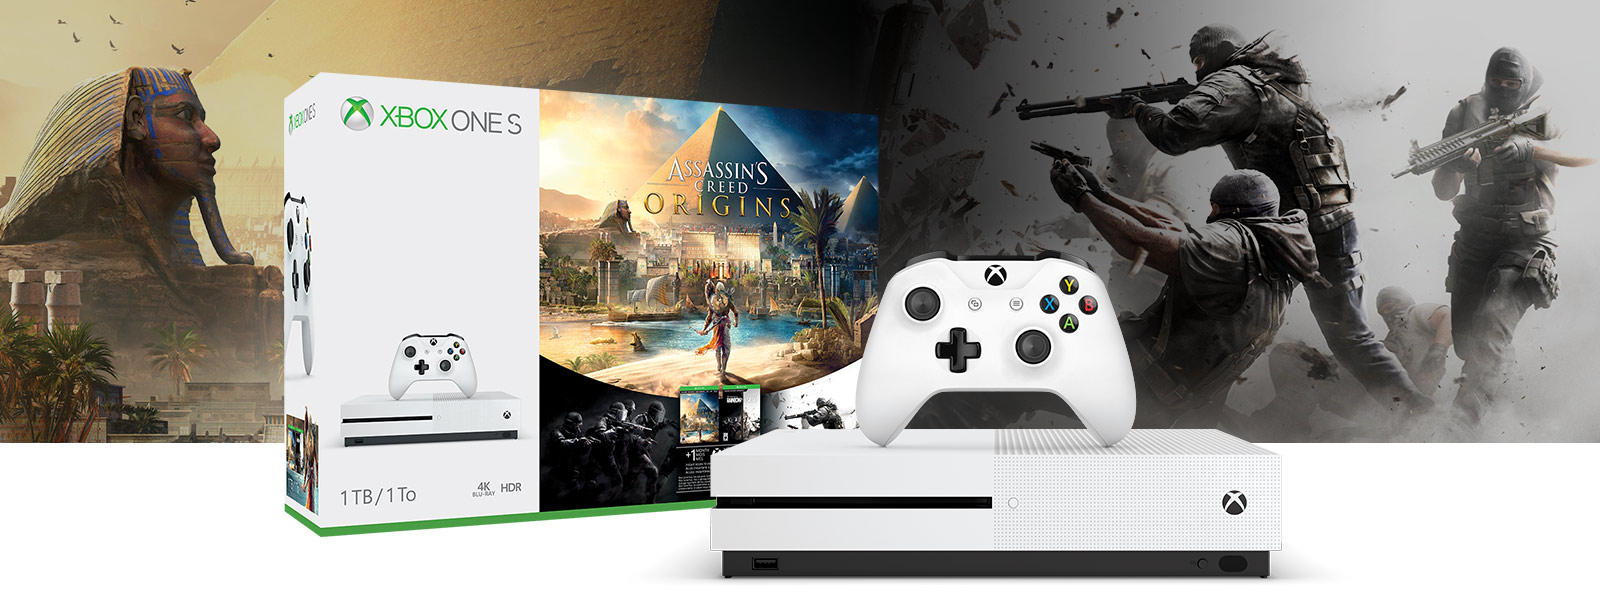 Assassin's Creed Origins Xbox One-Bonusedition (1 TB)